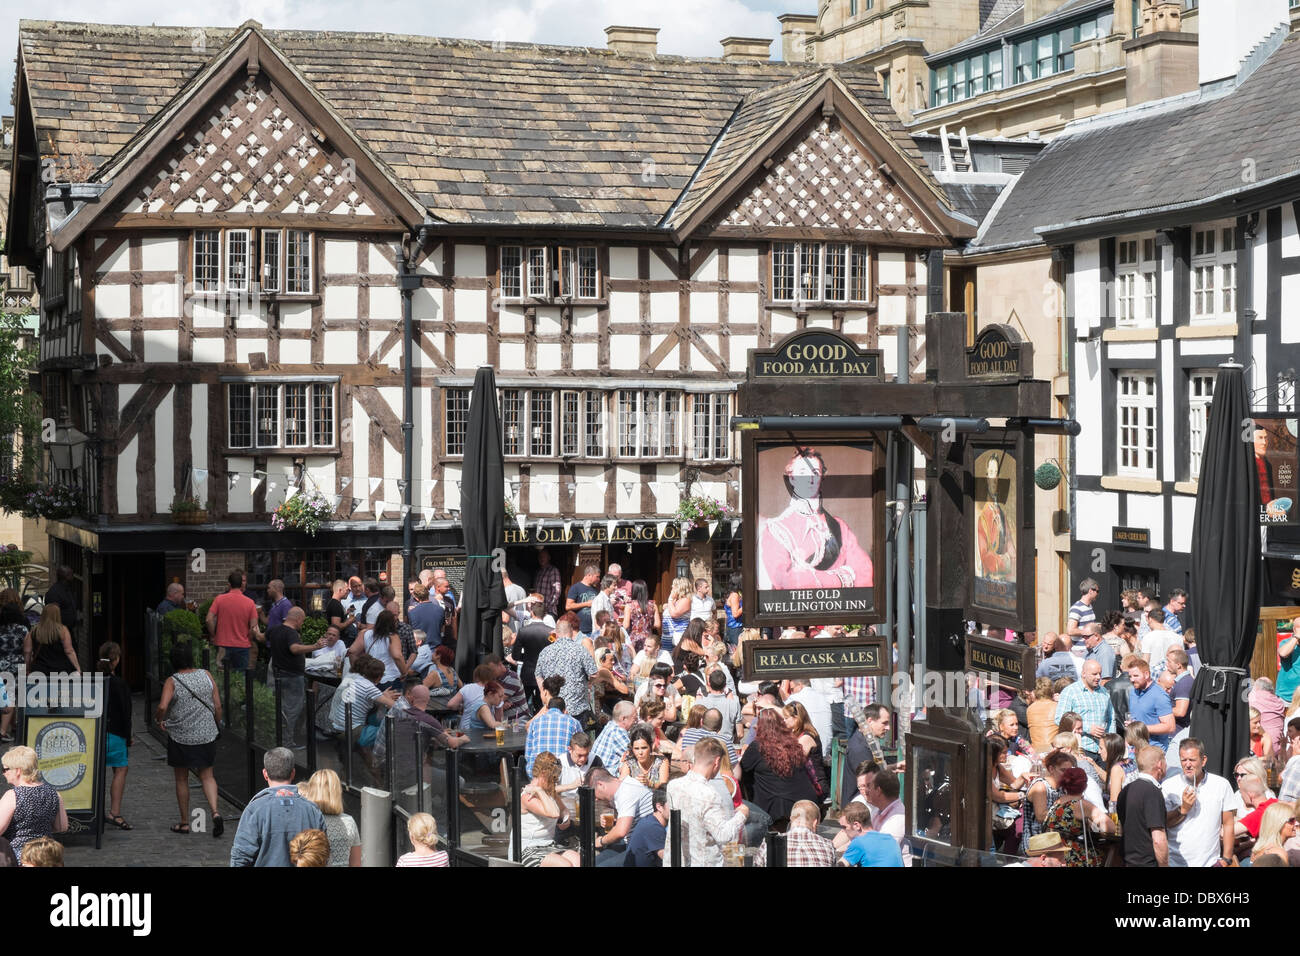 Crowds of people drinking outside 16th century timbered The Old Wellington Inn 1552 in summer in old Shambles Square - Stock Image